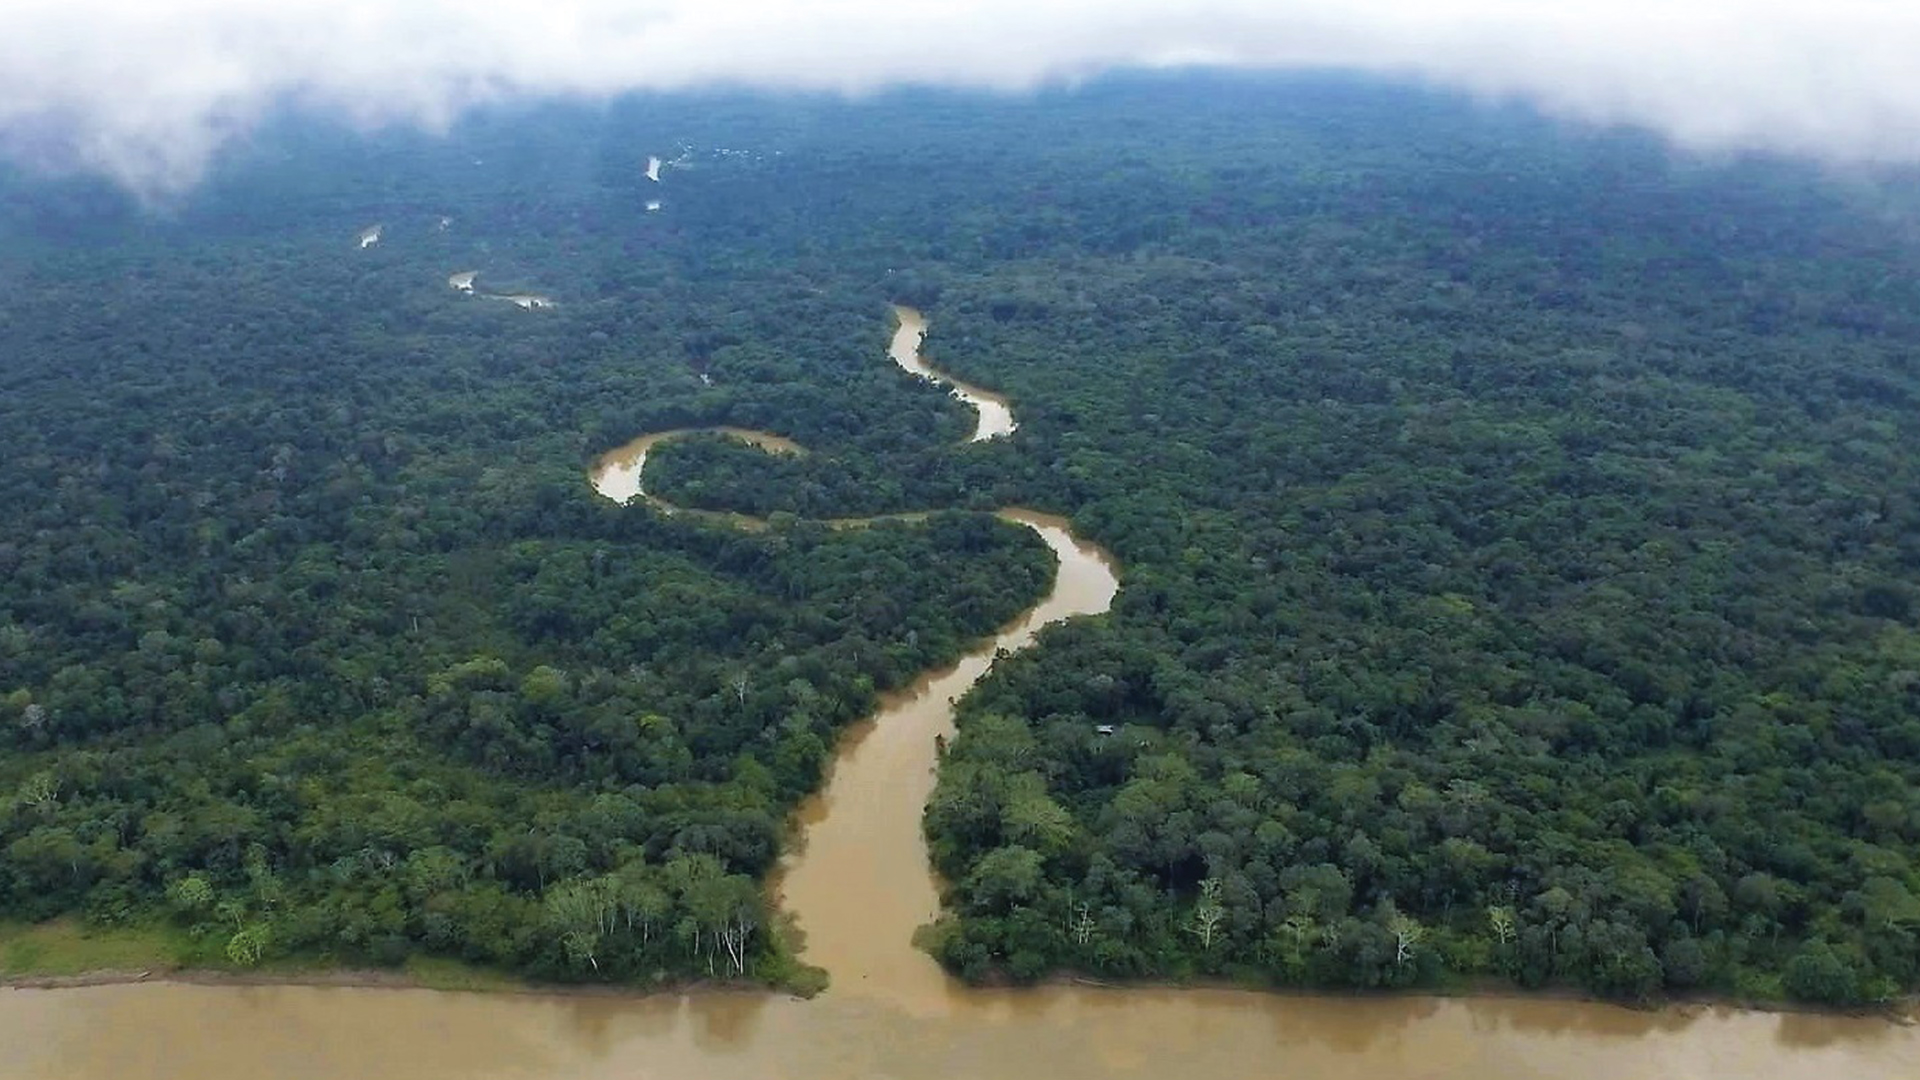 'A River Below' Uncovers the Origins of Explosive Footage of a Dolphin Killing in the Amazon